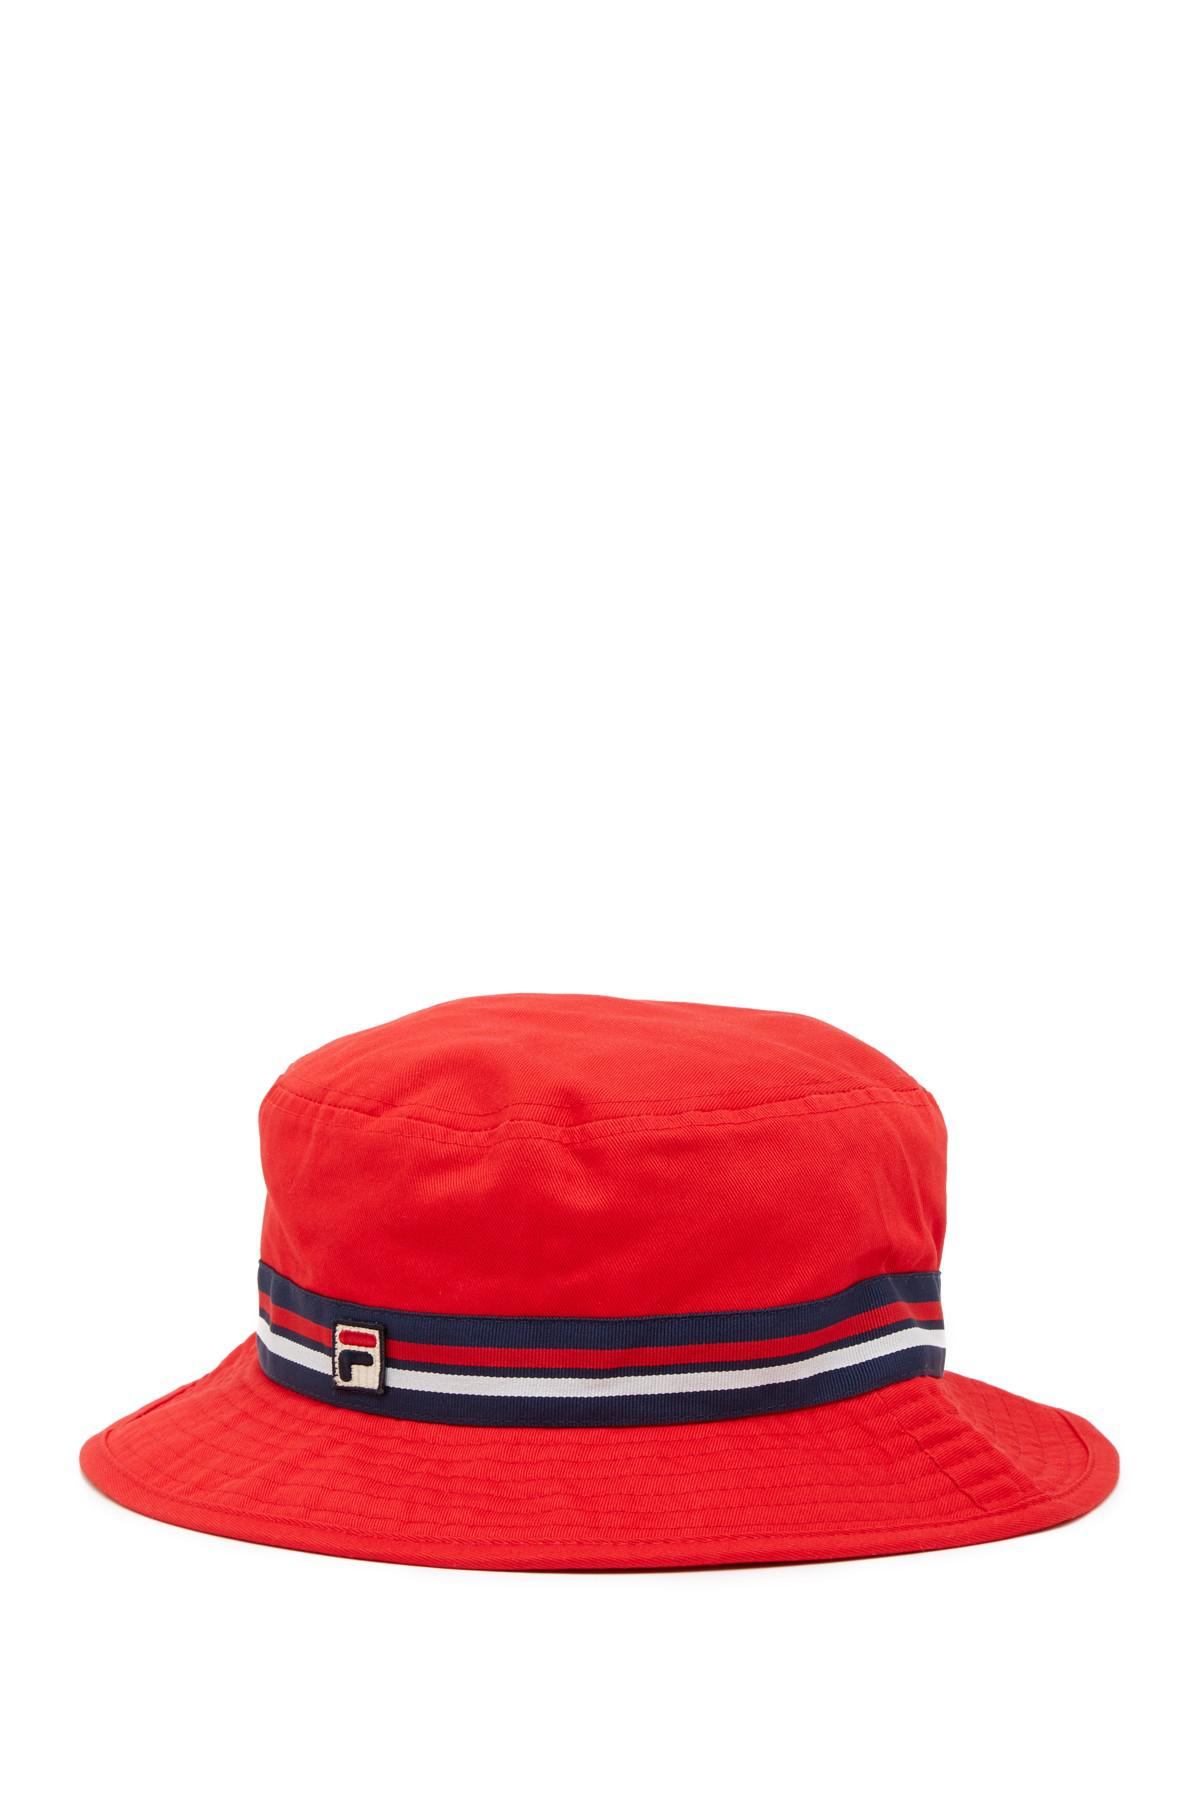 1577fe5830a Fila Heritage Boonie Bucket Hat in Red for Men - Lyst